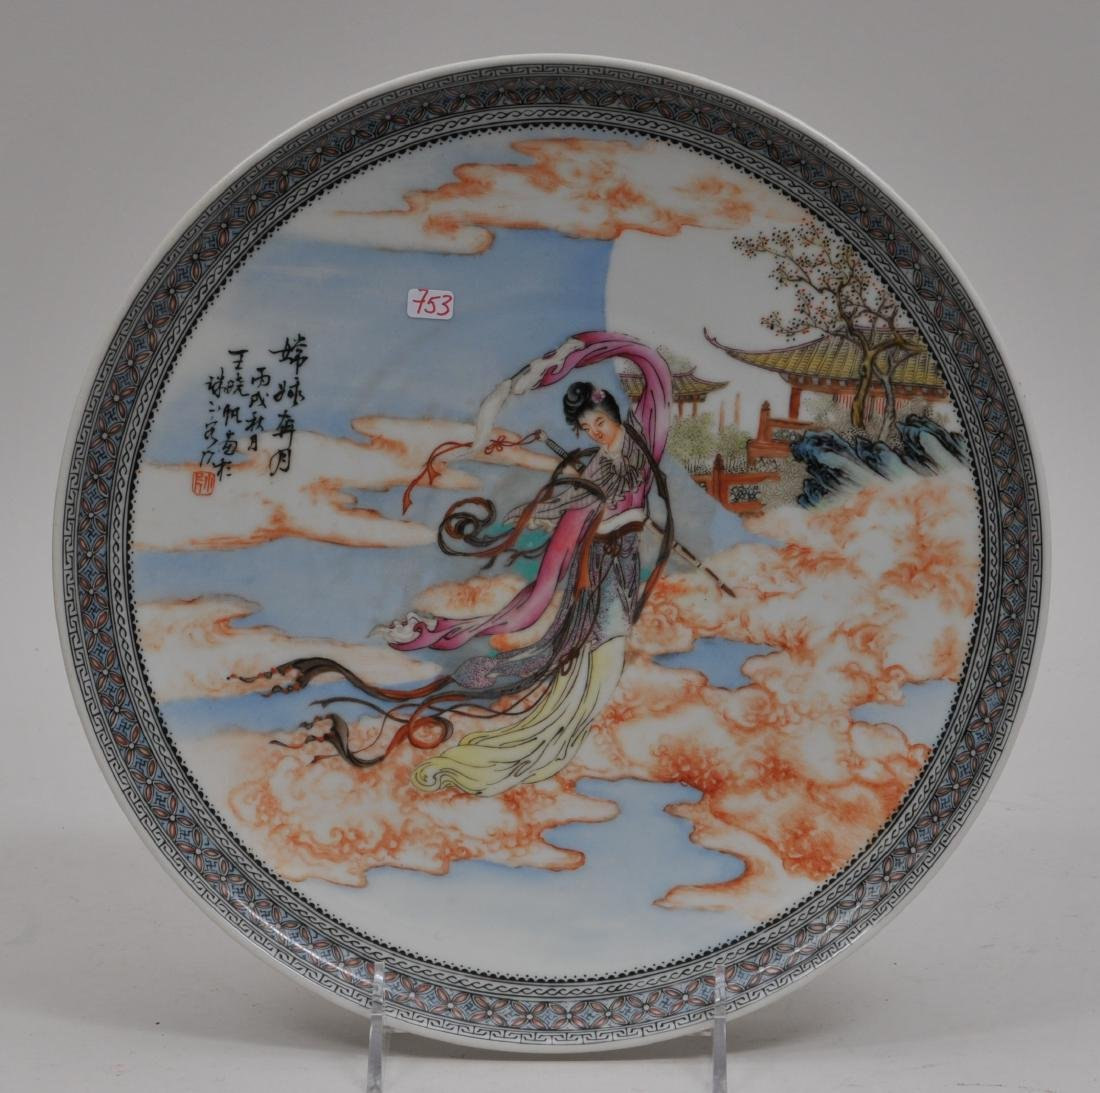 Porcelain plate. China. Mid 20th century. Famille Rose